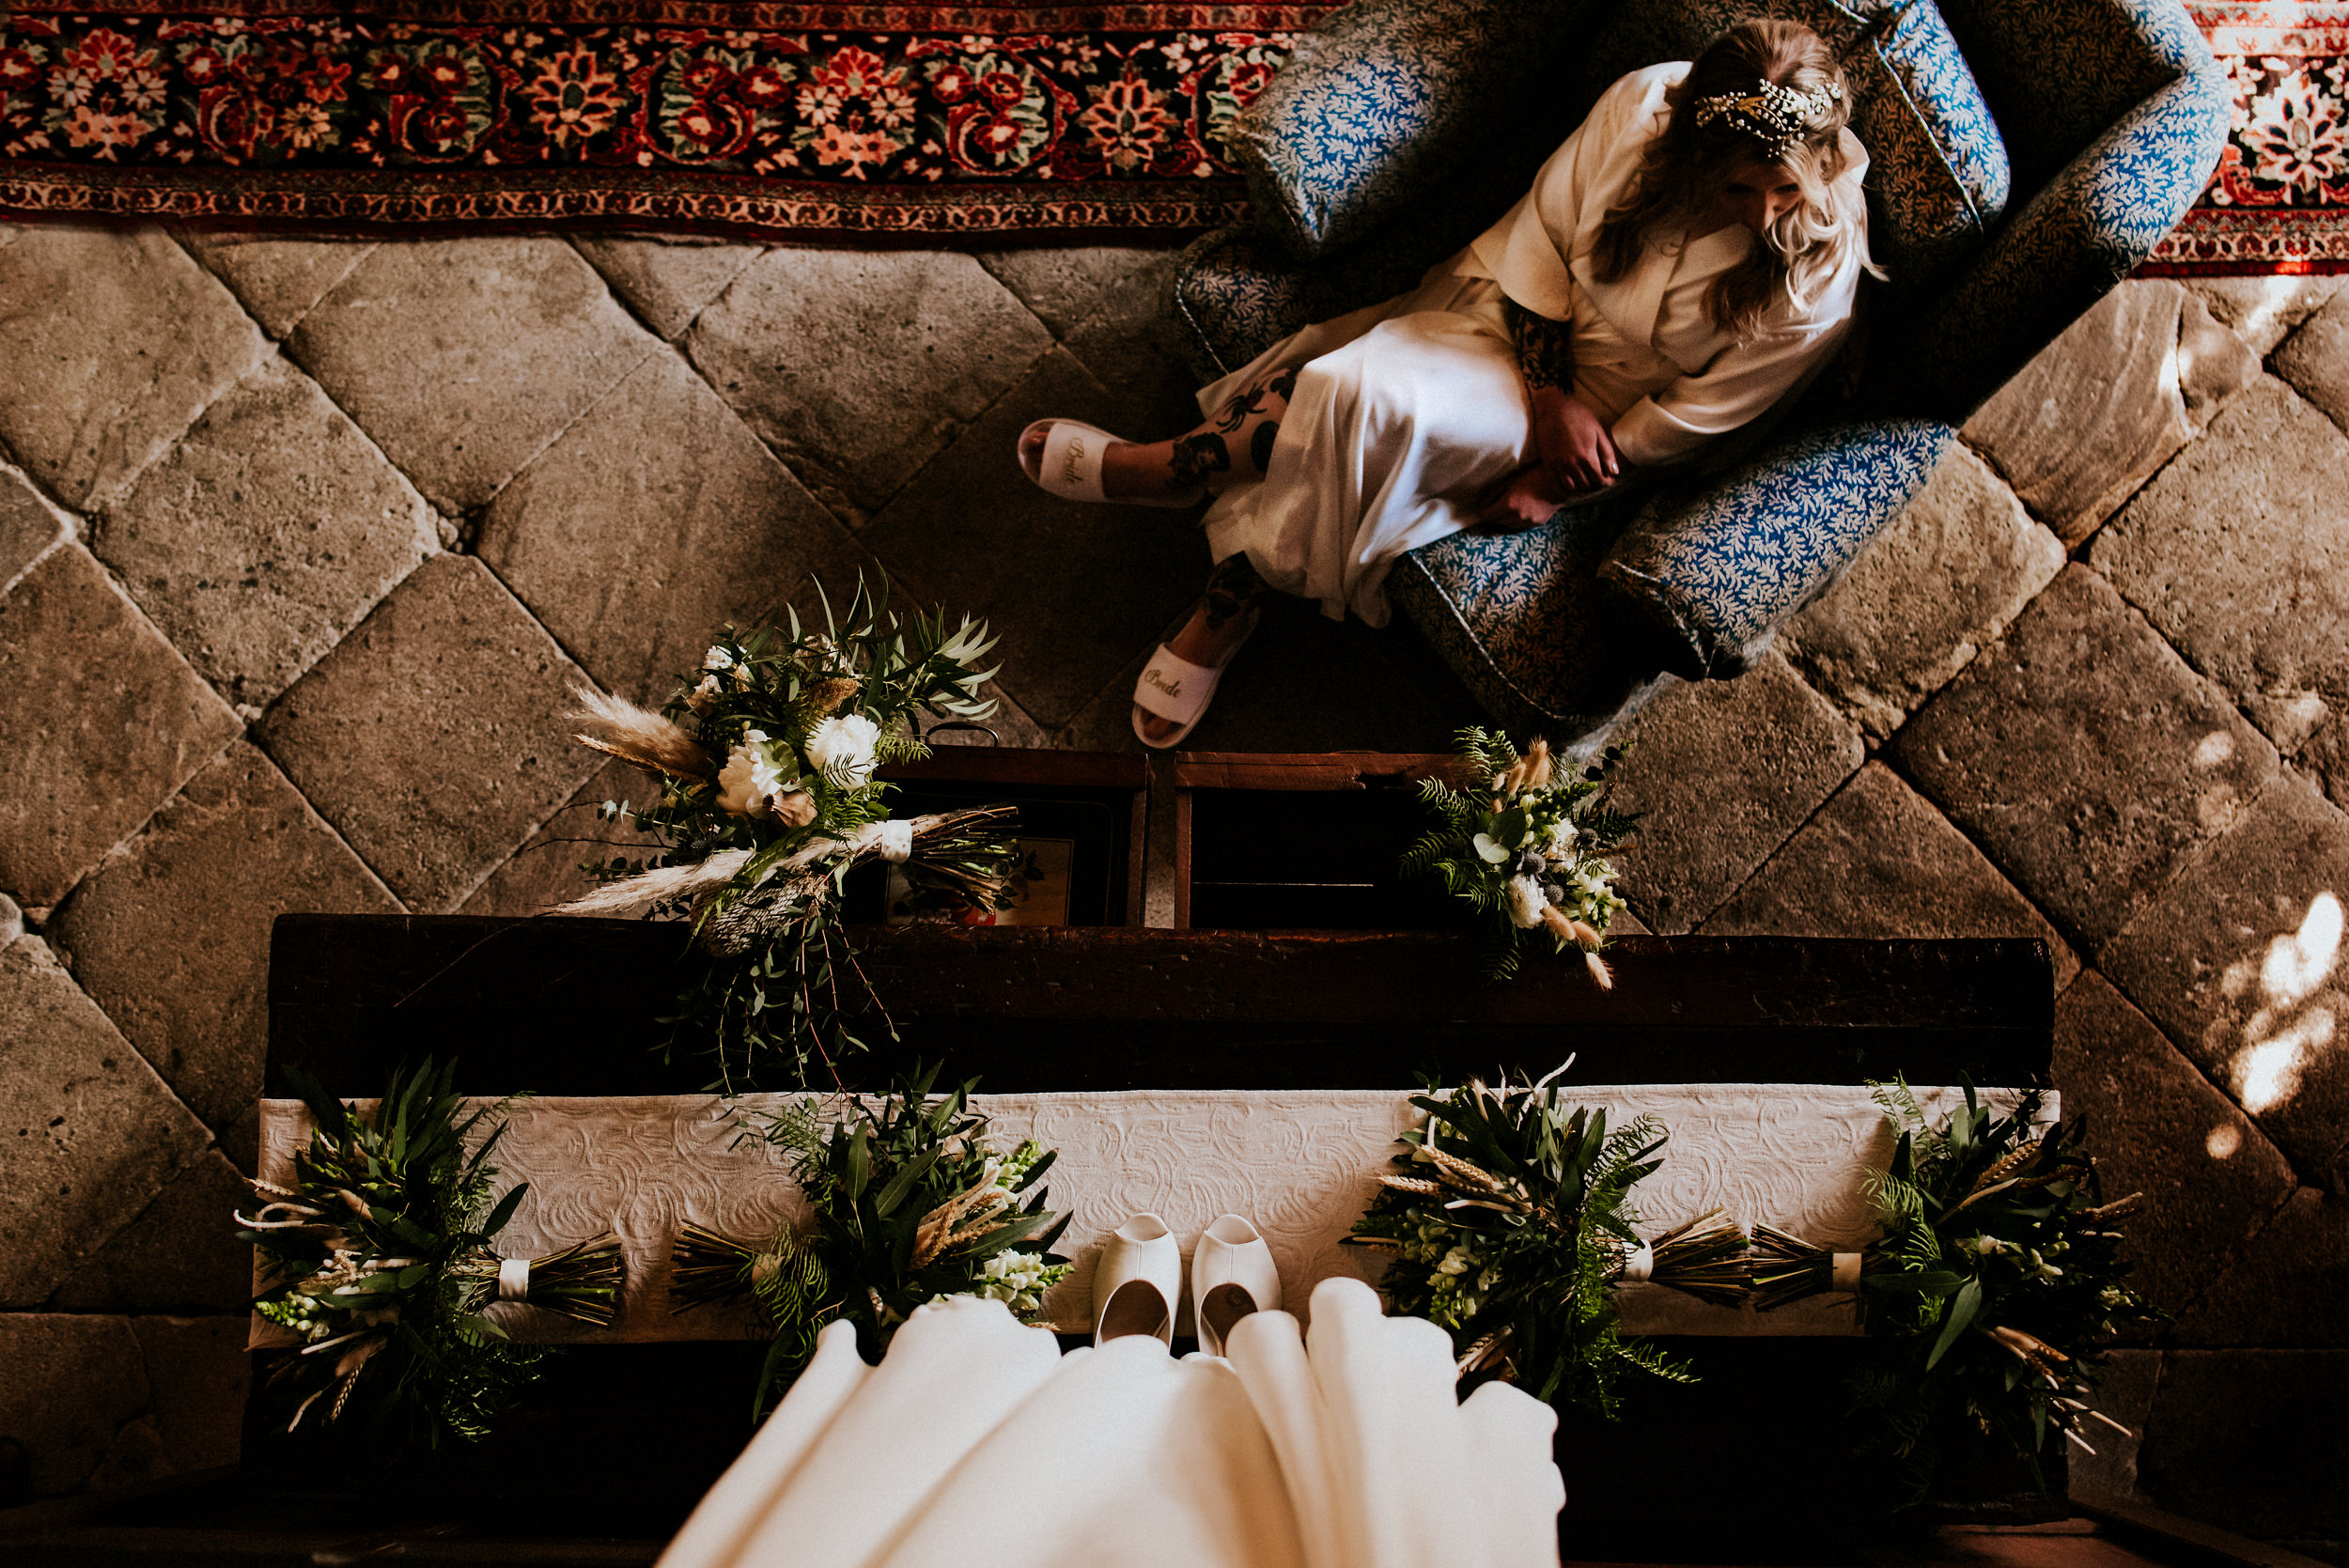 yorkshire-dales-craven-arms-appletreewick-wedding-photography-by-shutter-go-click-7.jpg